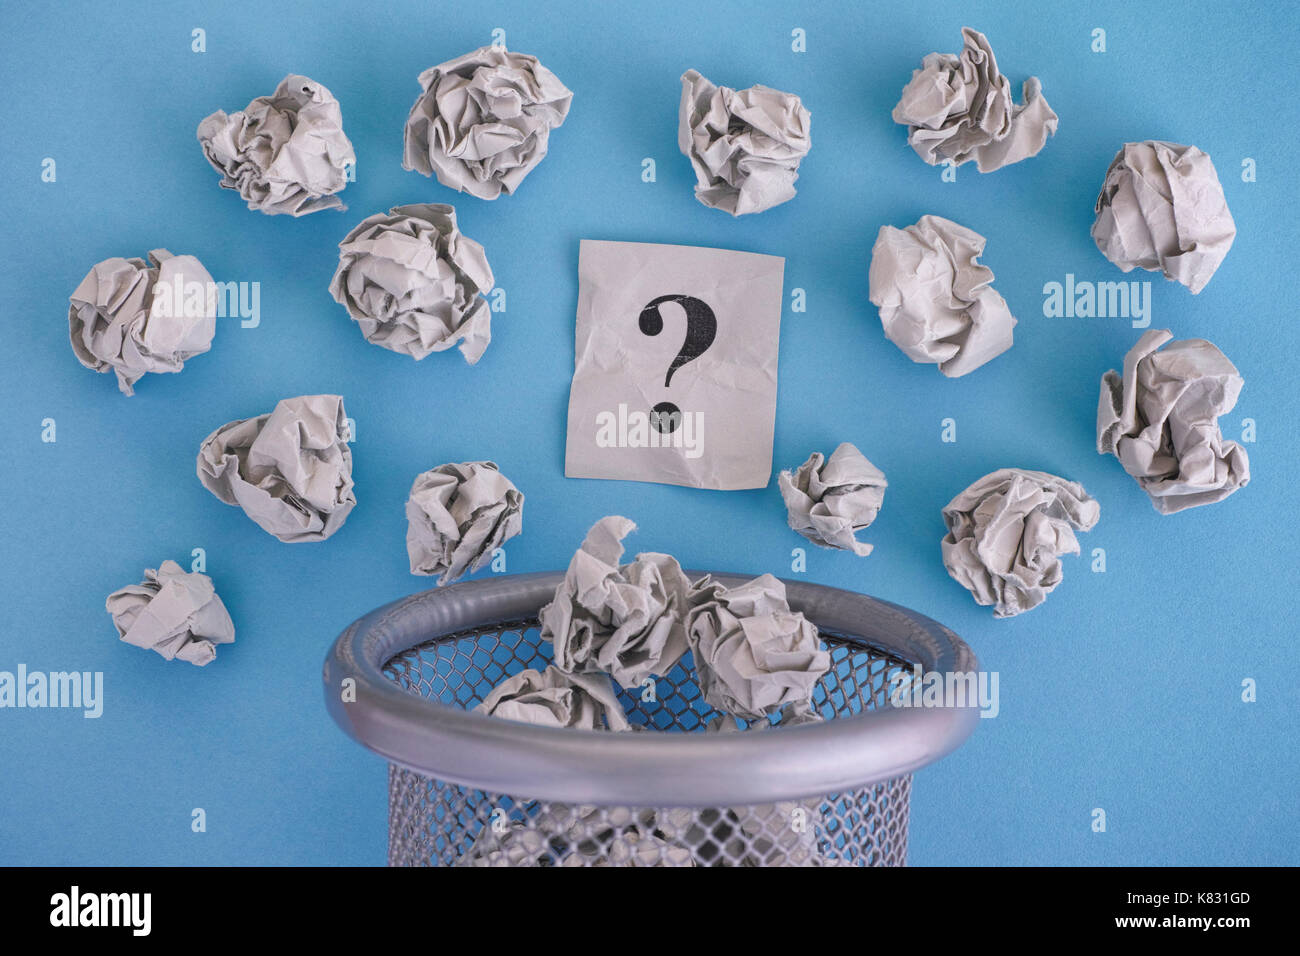 Gray crumpled paper balls and question mark rolling out of a trash can. Close up. - Stock Image